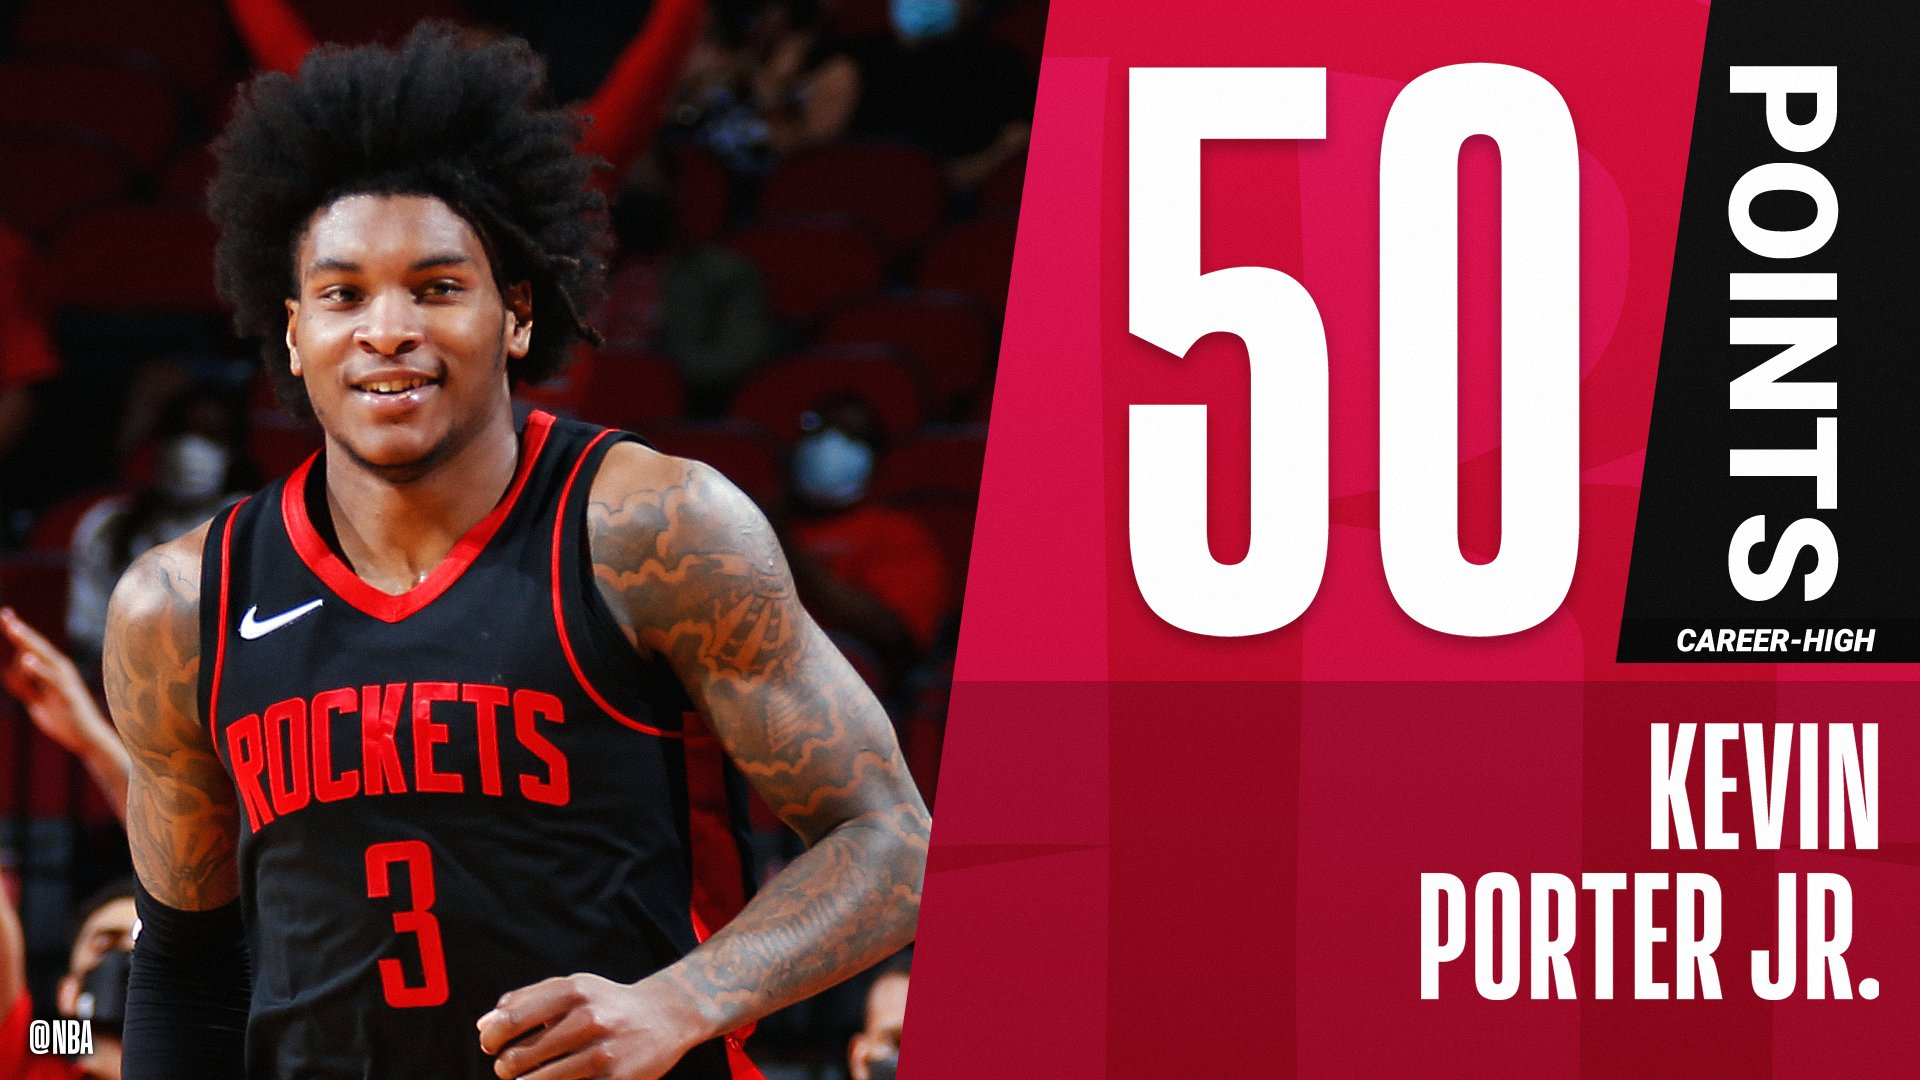 Kevin drops 50 points double-double